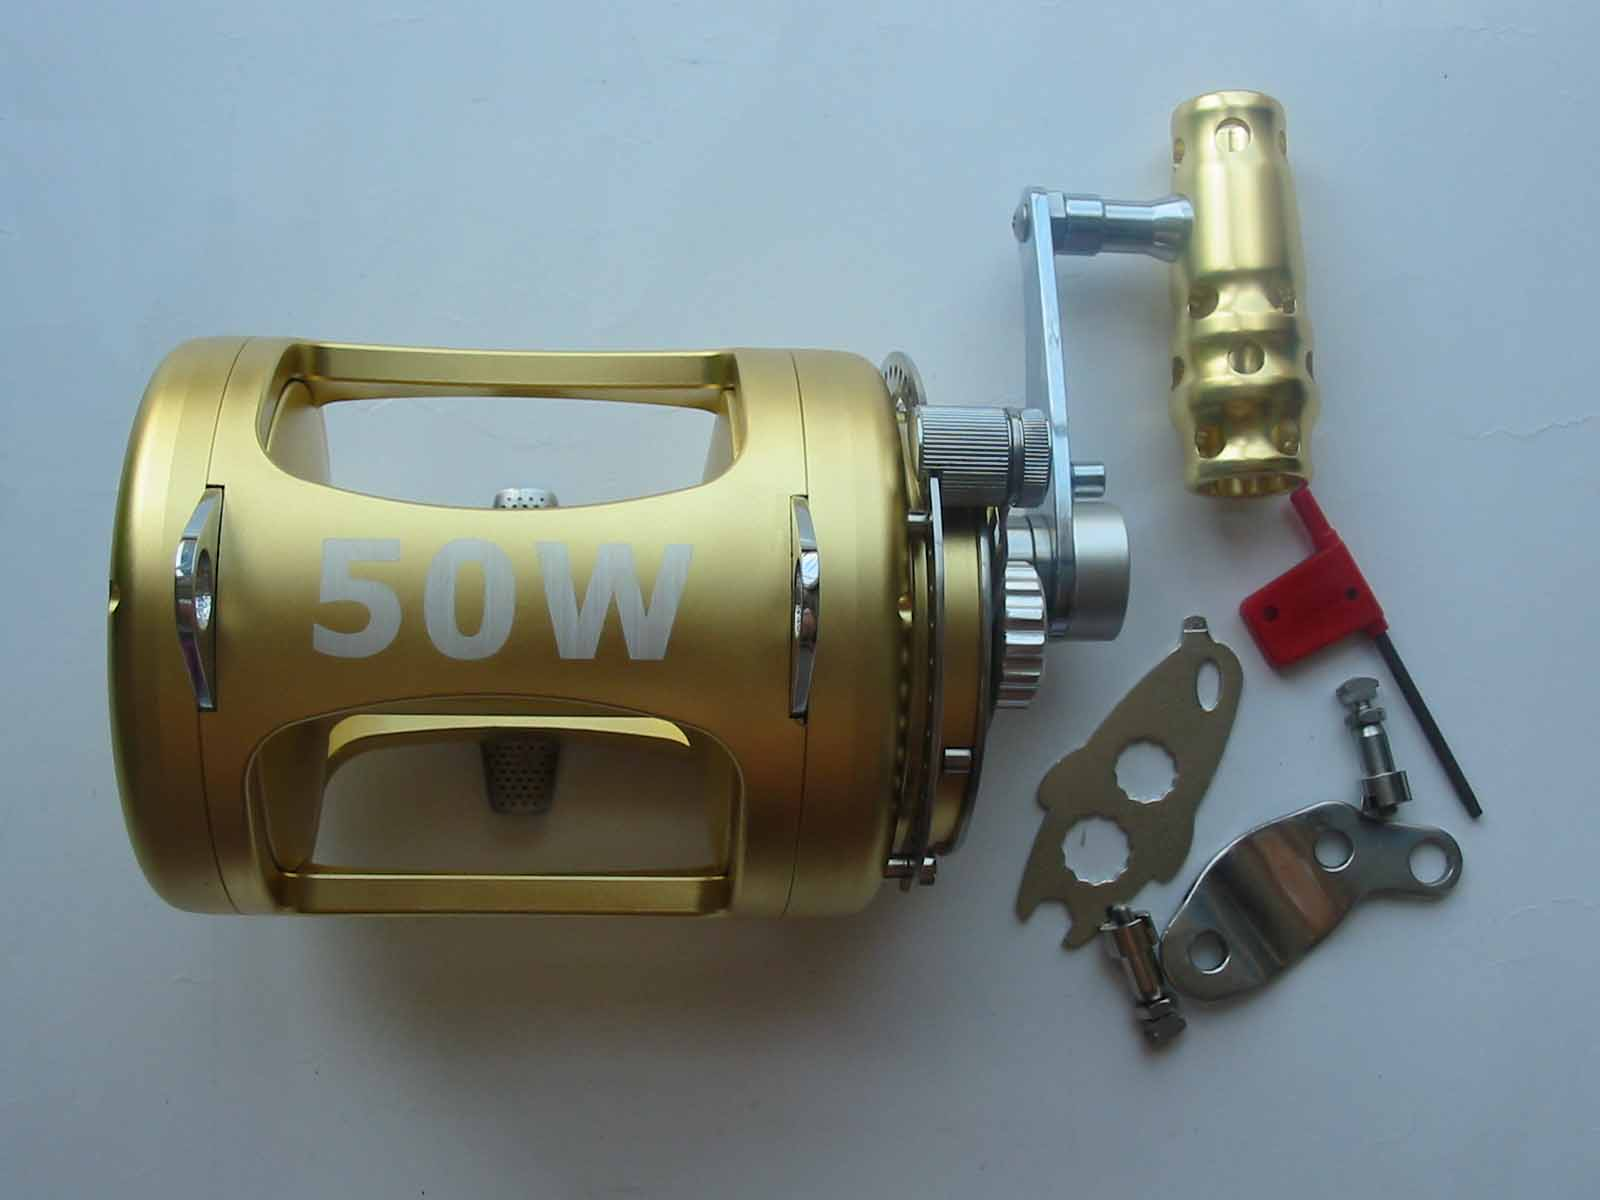 2 Speed Trolling Reels 50W